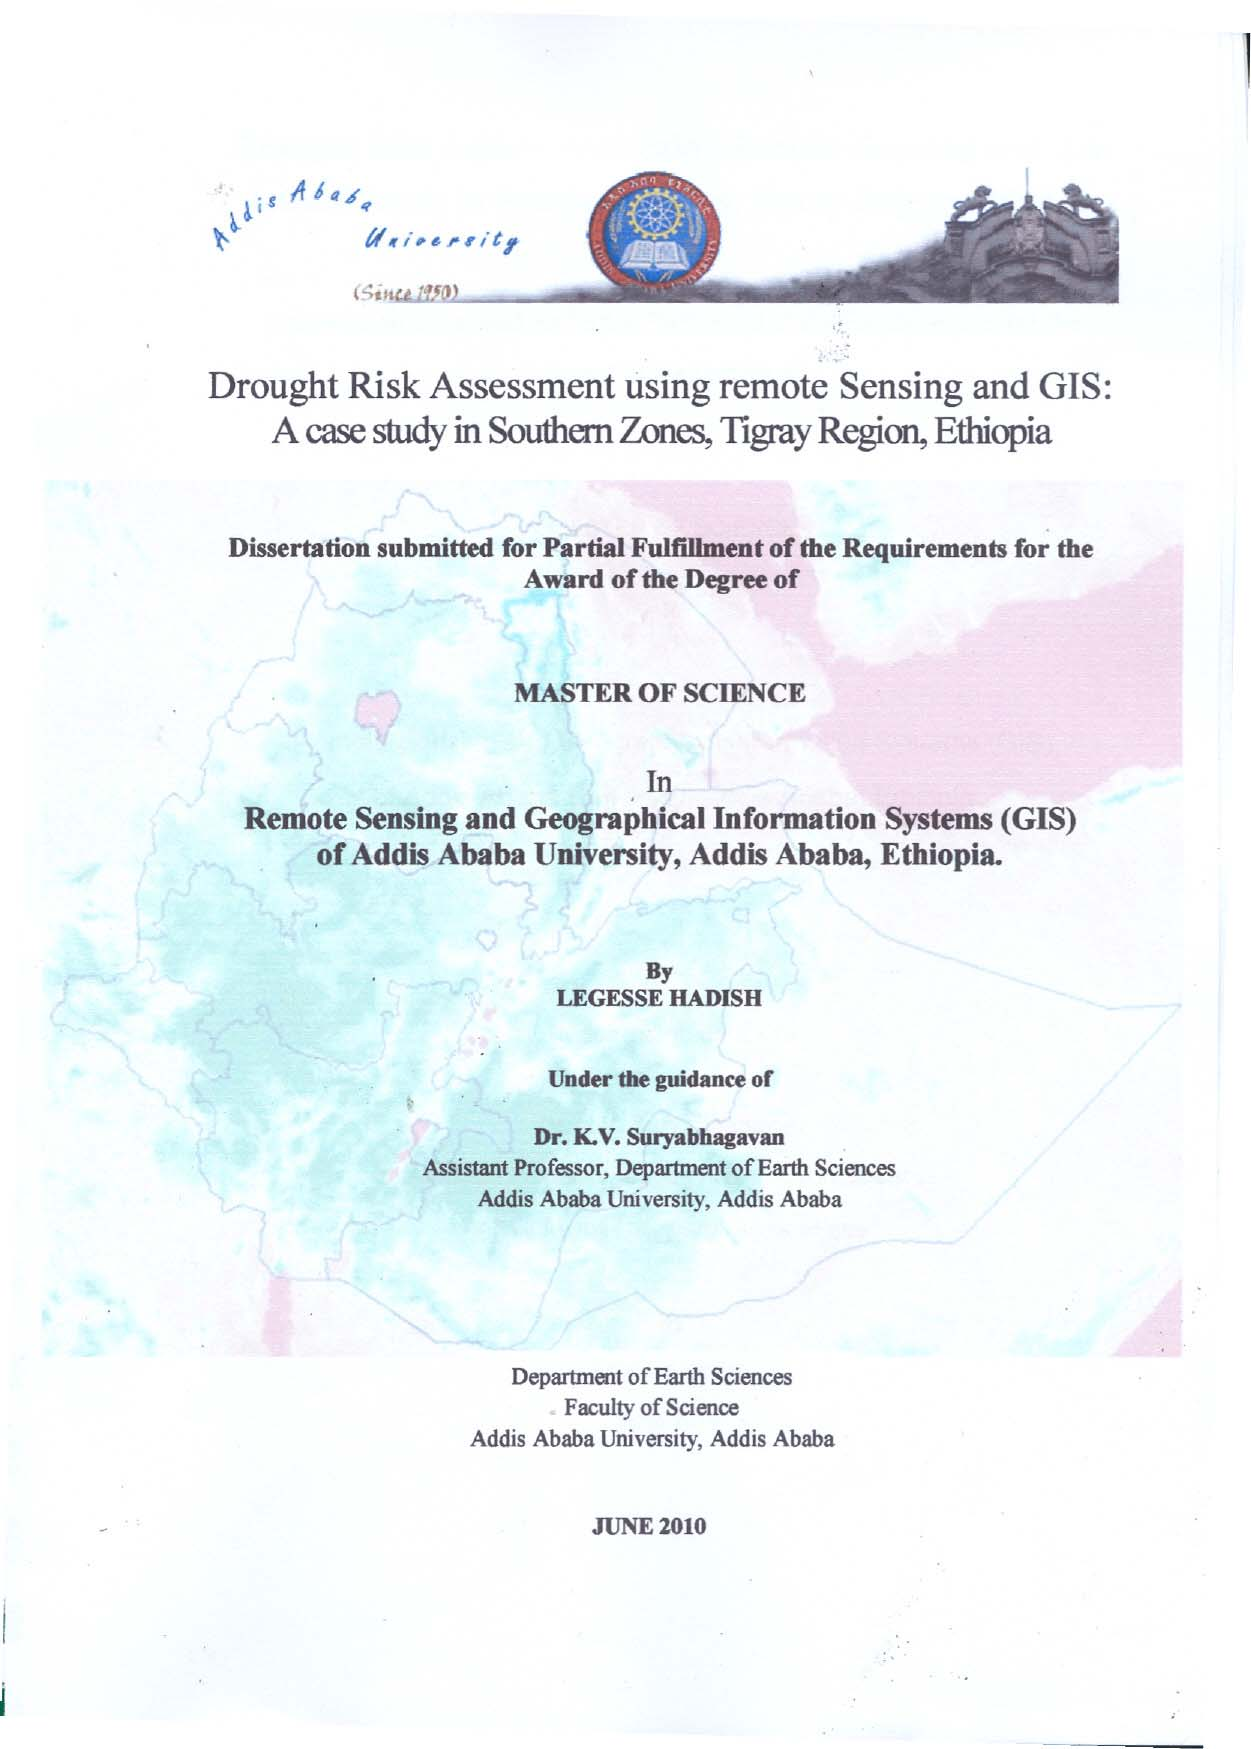 Drought Risk Assessment Using Remote Sensing and GIS: A Case Study